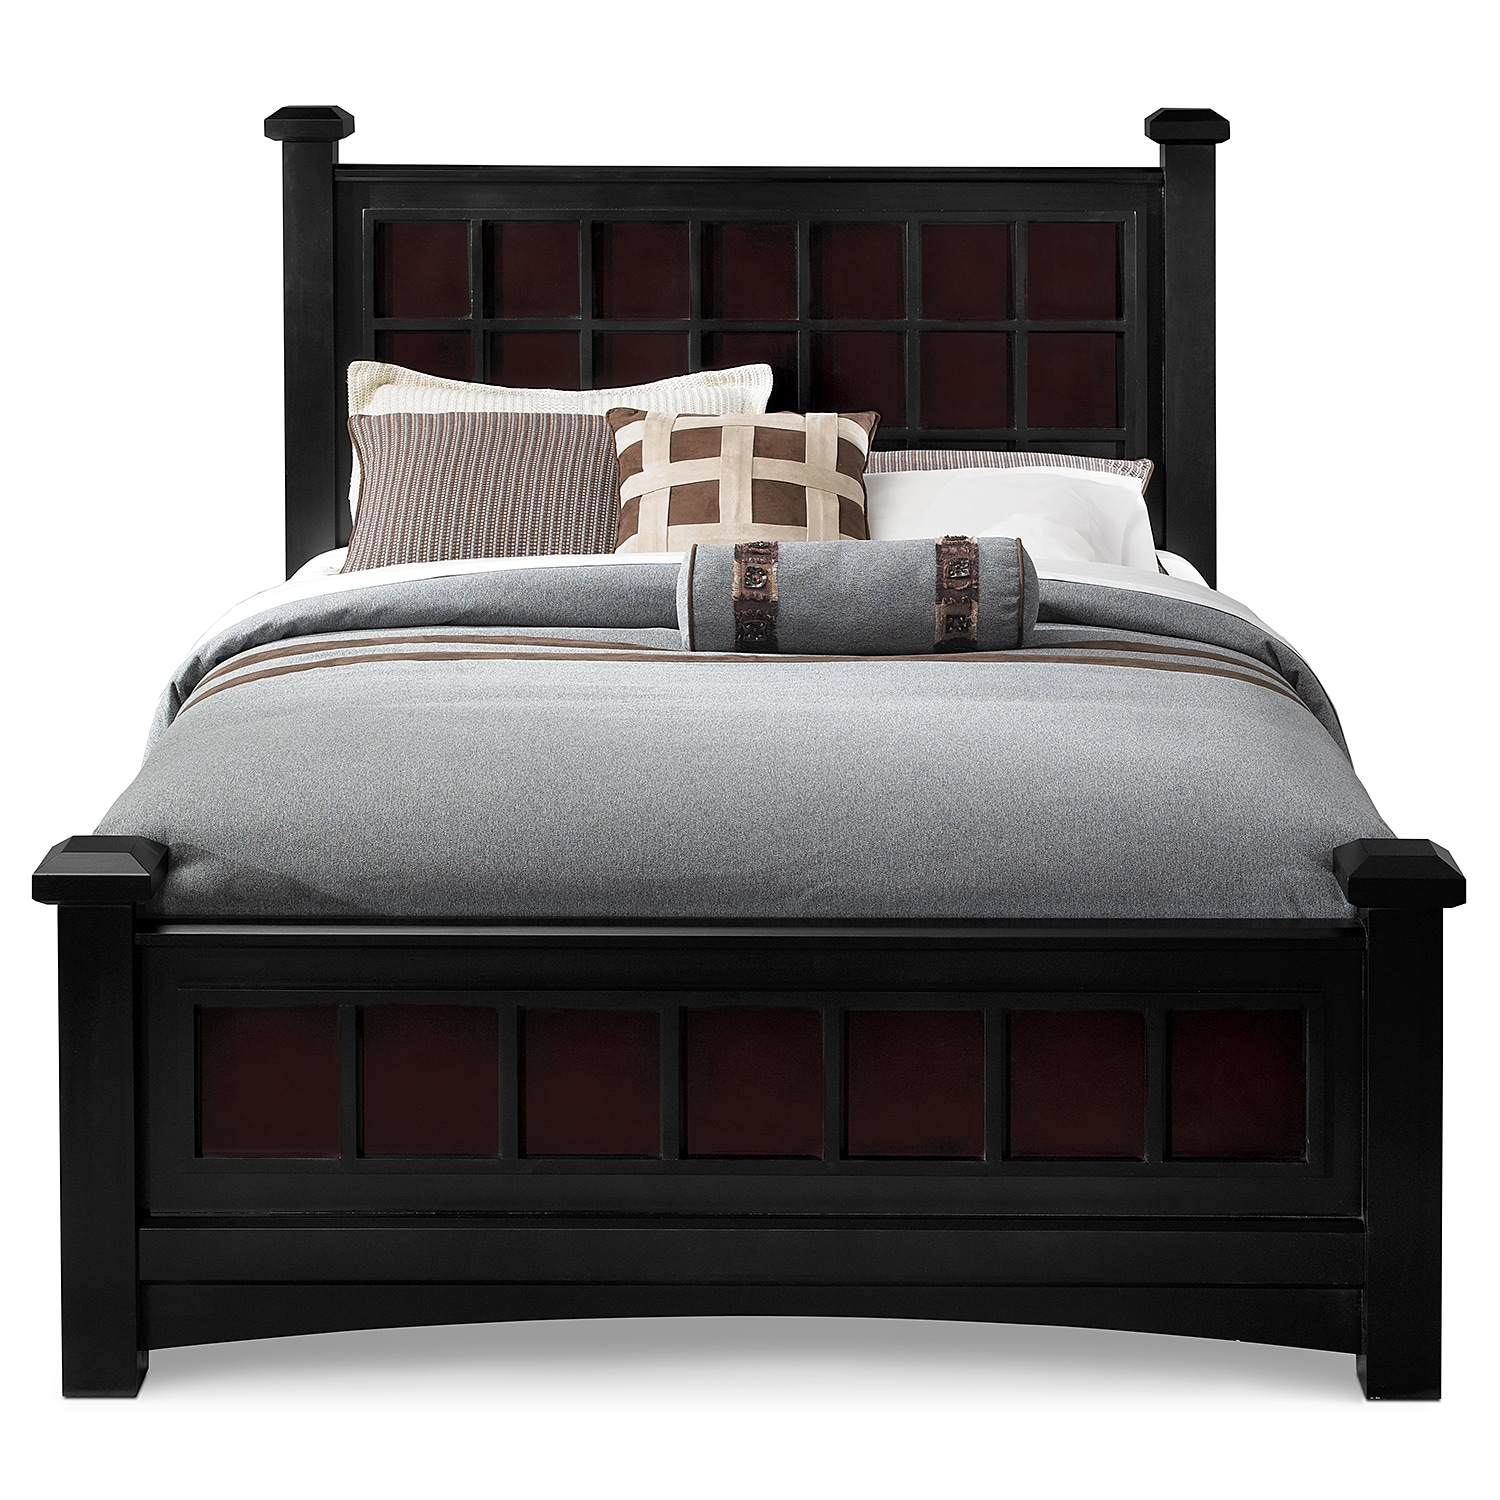 Winchester king bed value city furniture for Rooms beds furniture